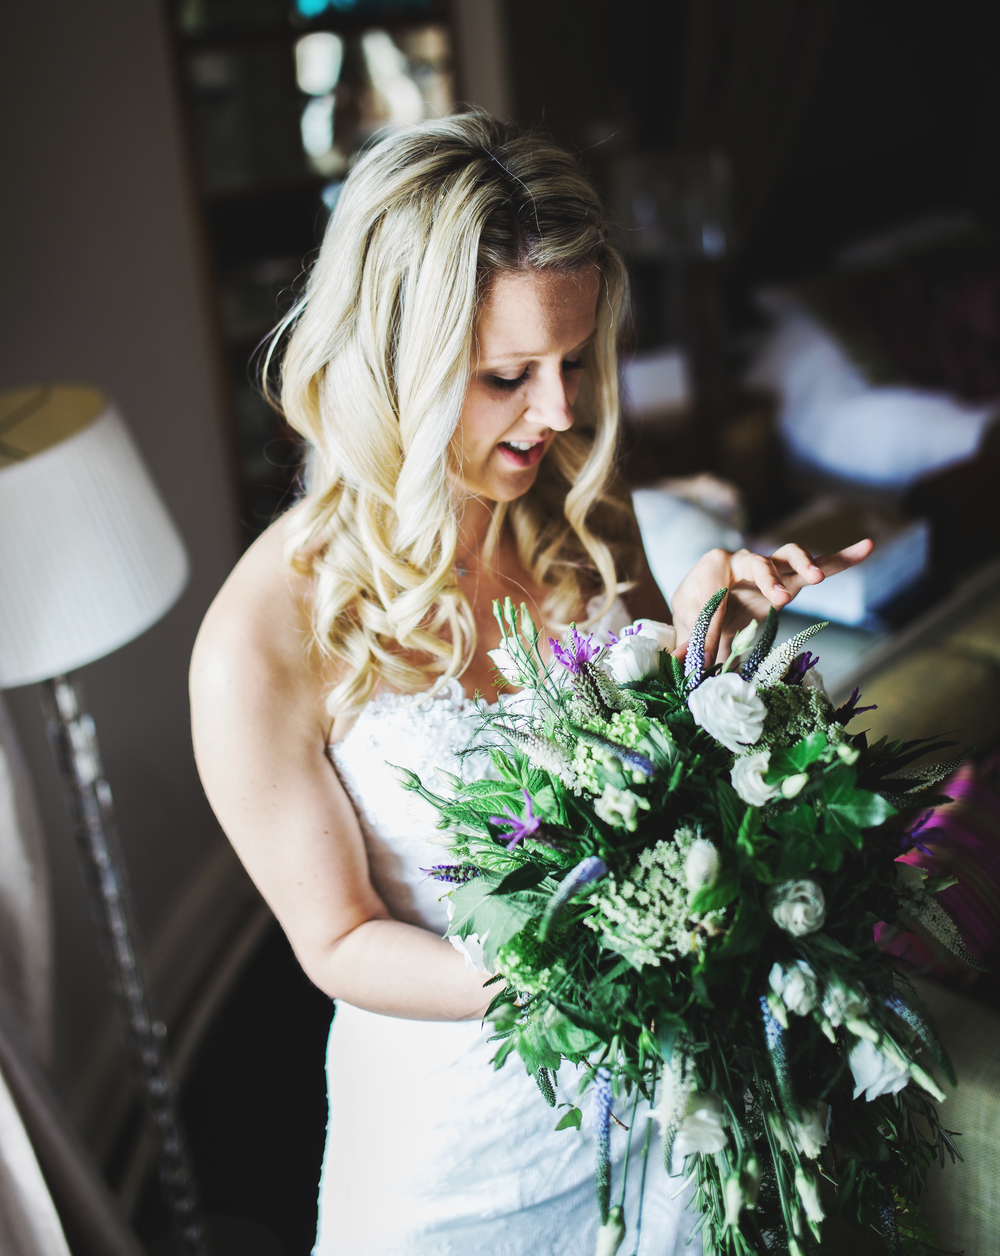 Bride with her bouquet of flowers in her hand.